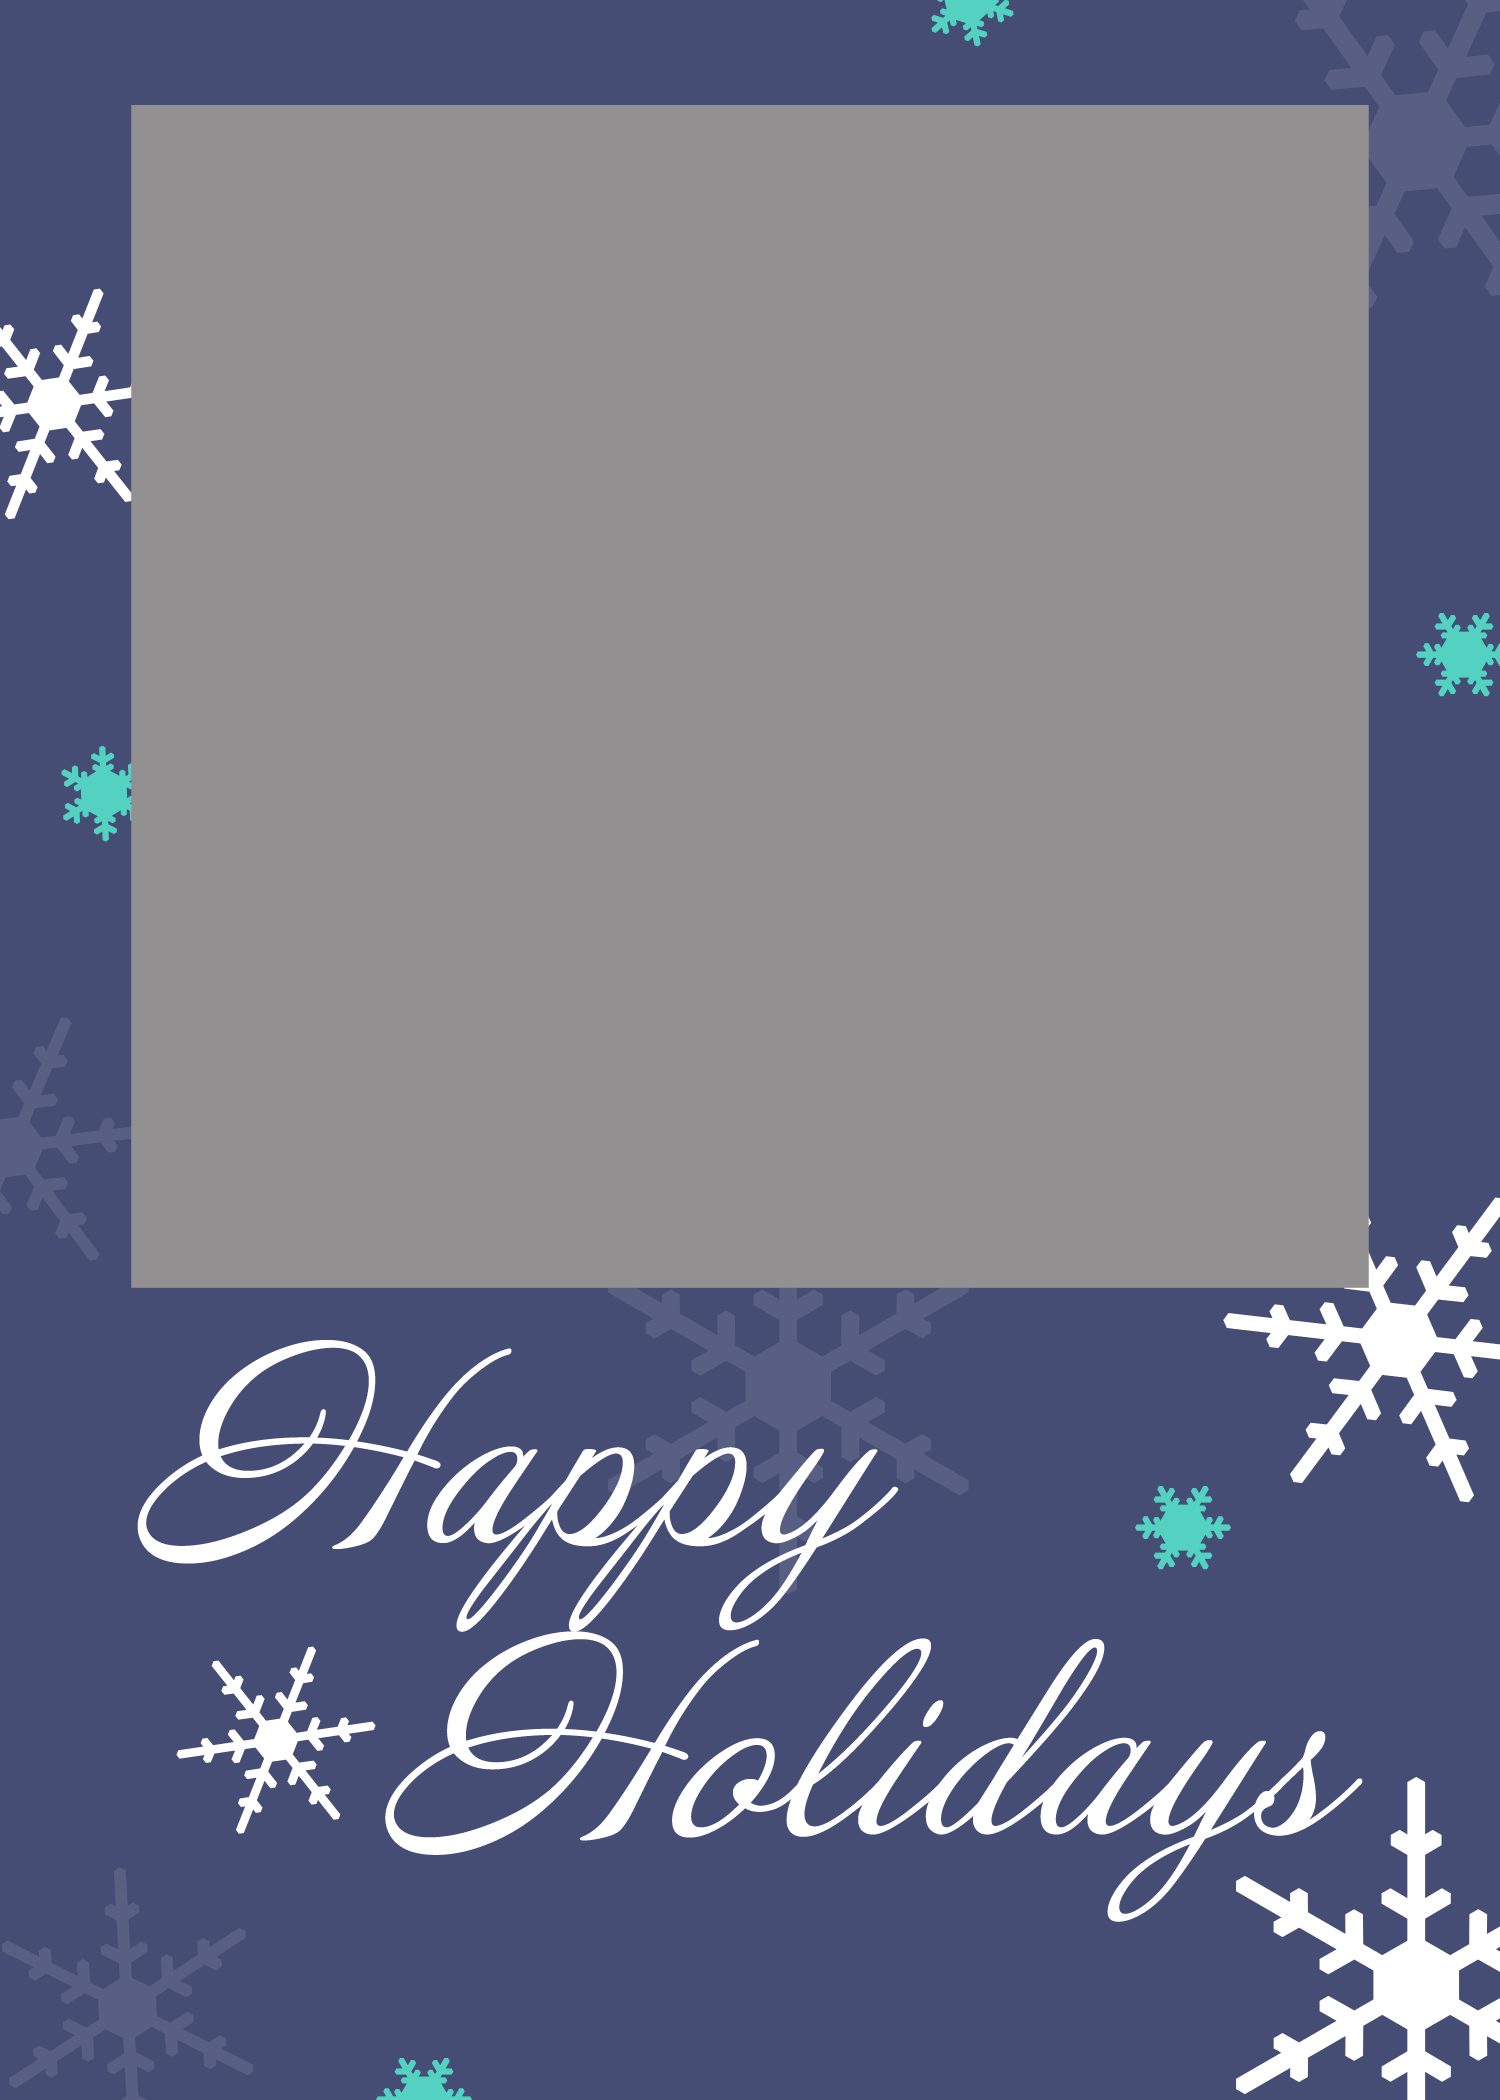 Free Printable Holiday Photo Card Plus Pixlr Video Tutorial Blo Free Printable Photo Cards Free Holiday Photo Card Templates Holiday Photo Cards Template